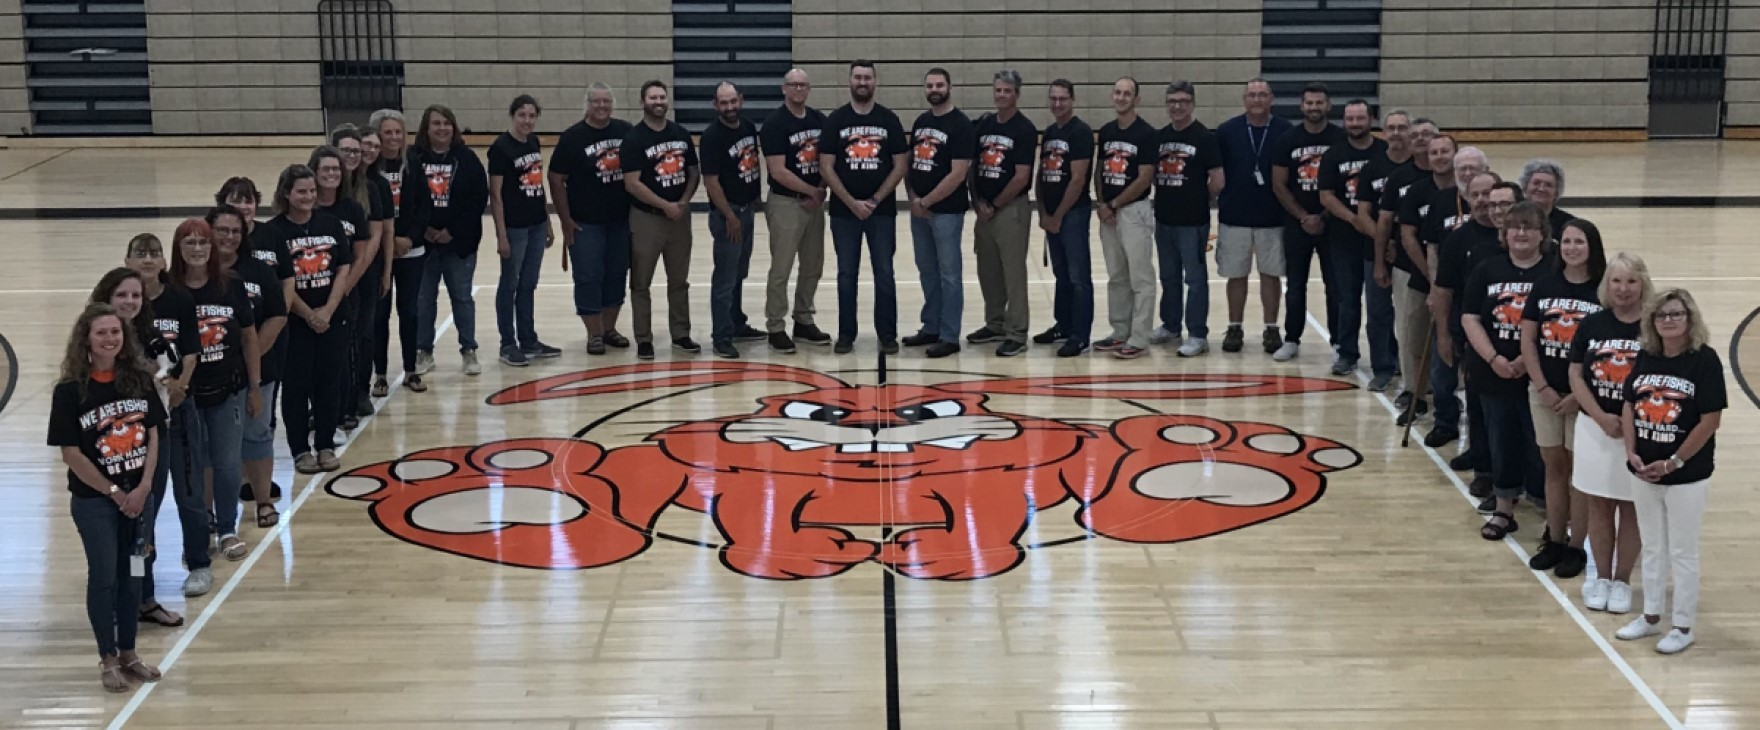 Staff standing around the Bunny Logo in the High School Gym.